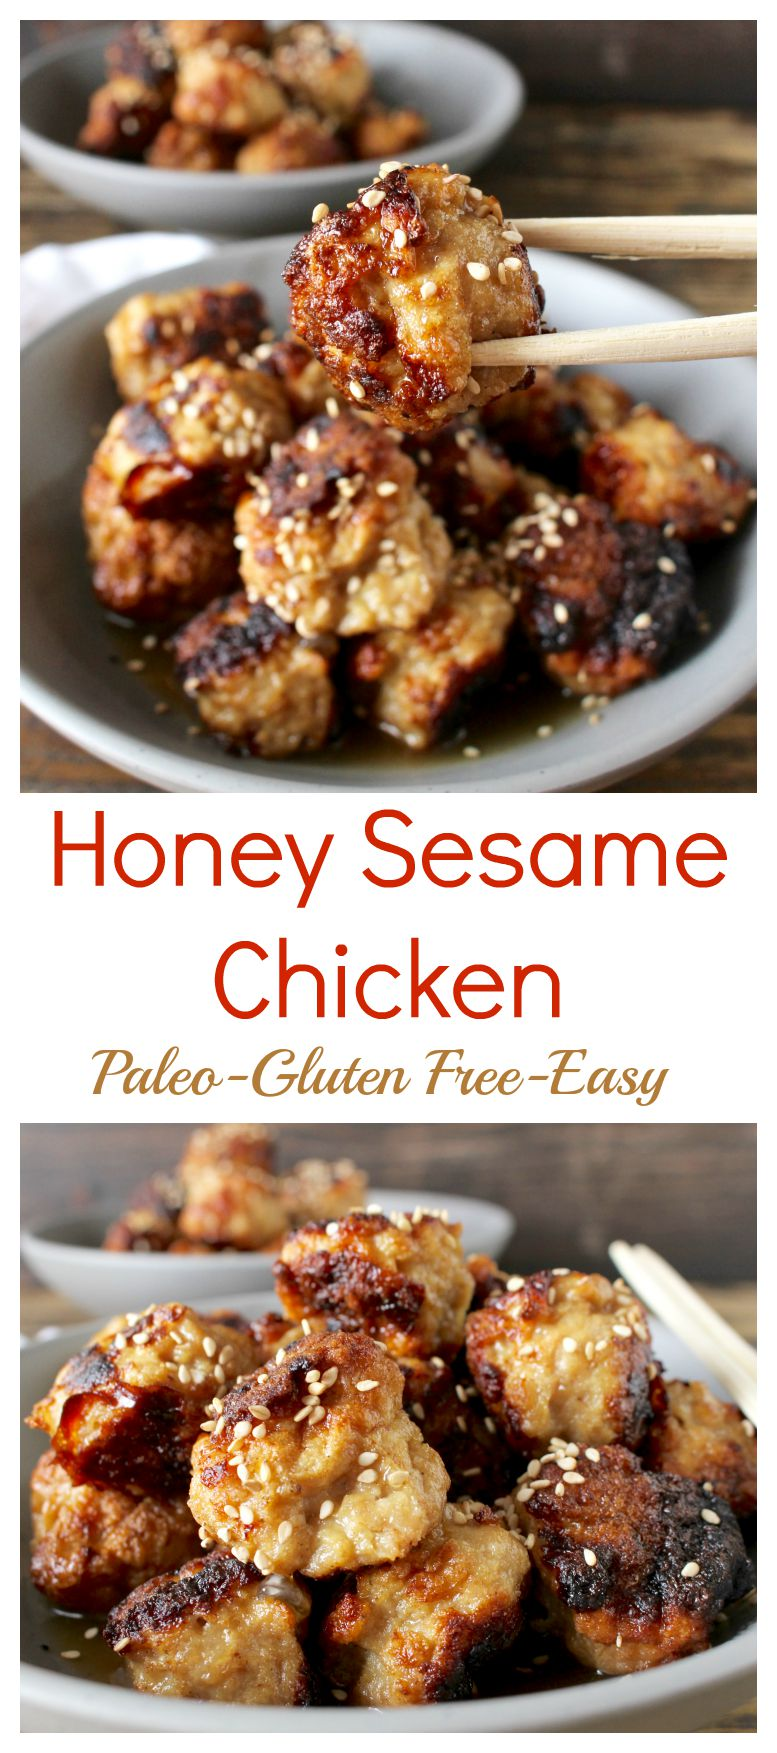 Honey Sesame Chicken (Paleo)